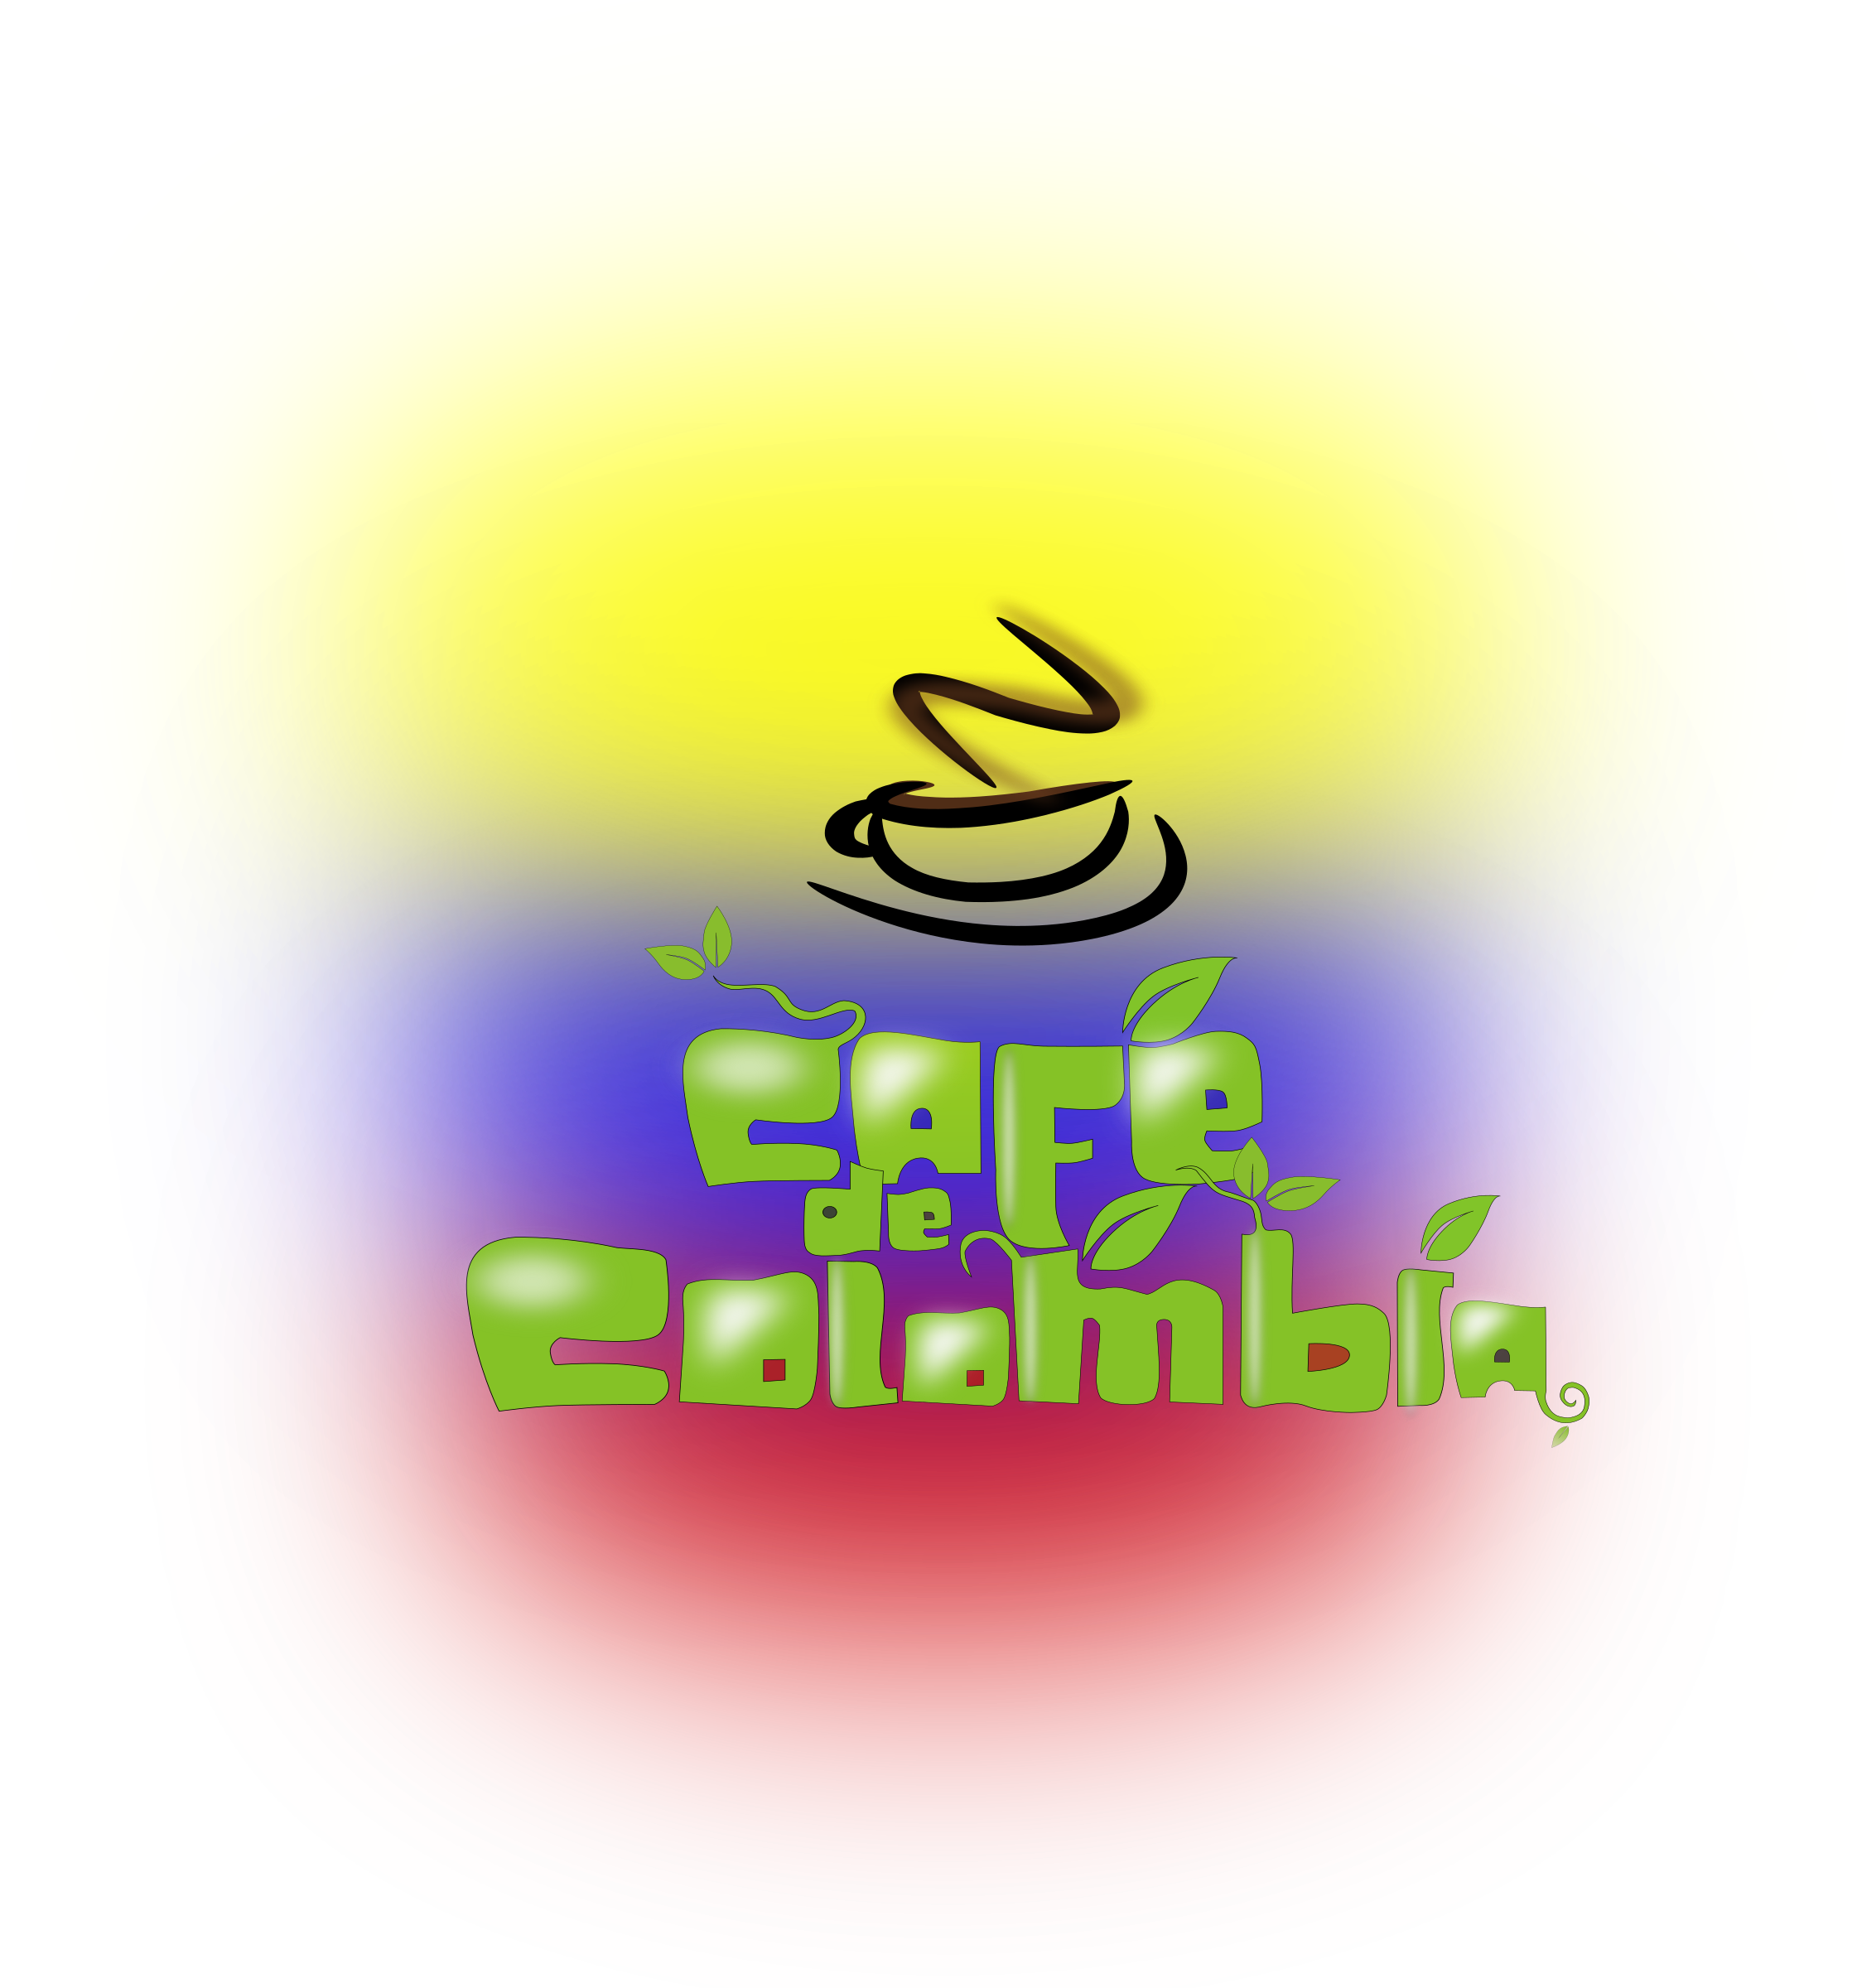 Cafe De Colombia by santiago-bmx